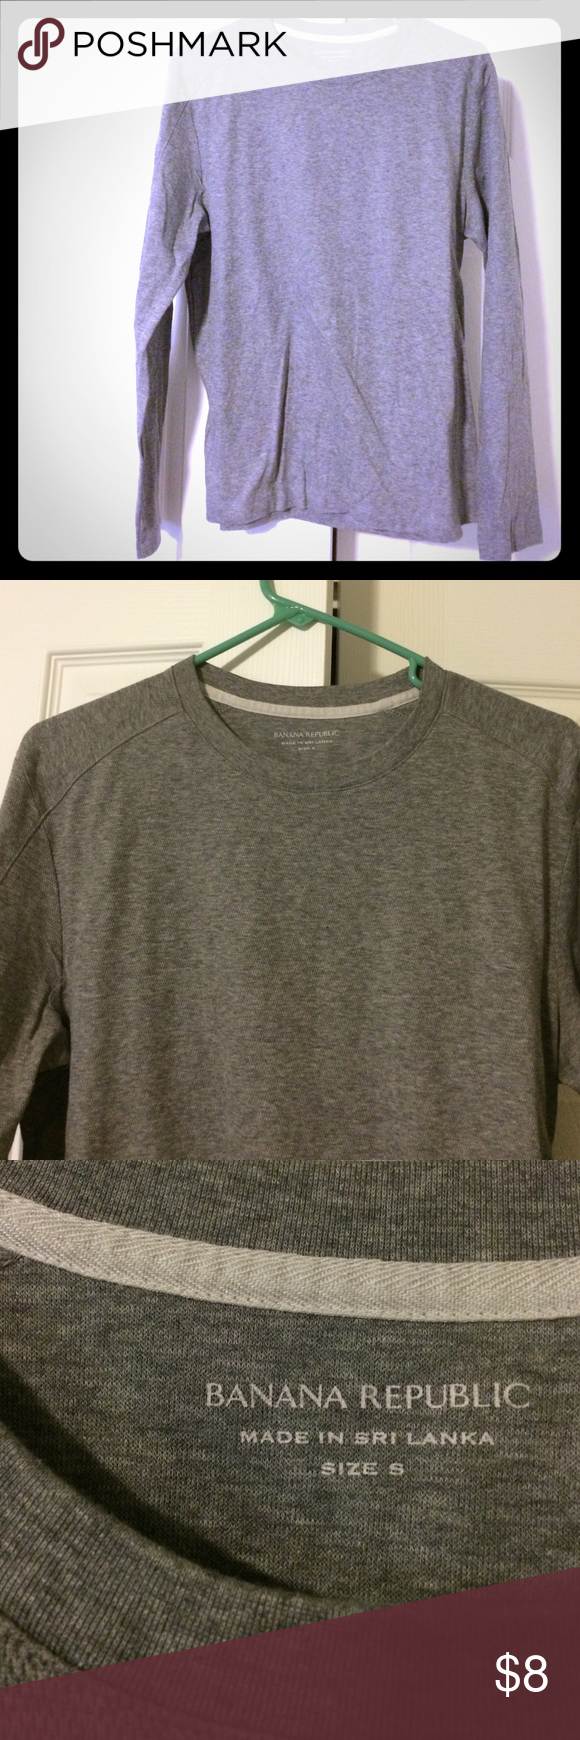 Banana Republic men's long sleeve tee In excellent condition. Thicker than a normal tee but thinner than a sweater. Price is firm; I don't accept offers. No trades. Bundle and save! Banana Republic Shirts Tees - Long Sleeve